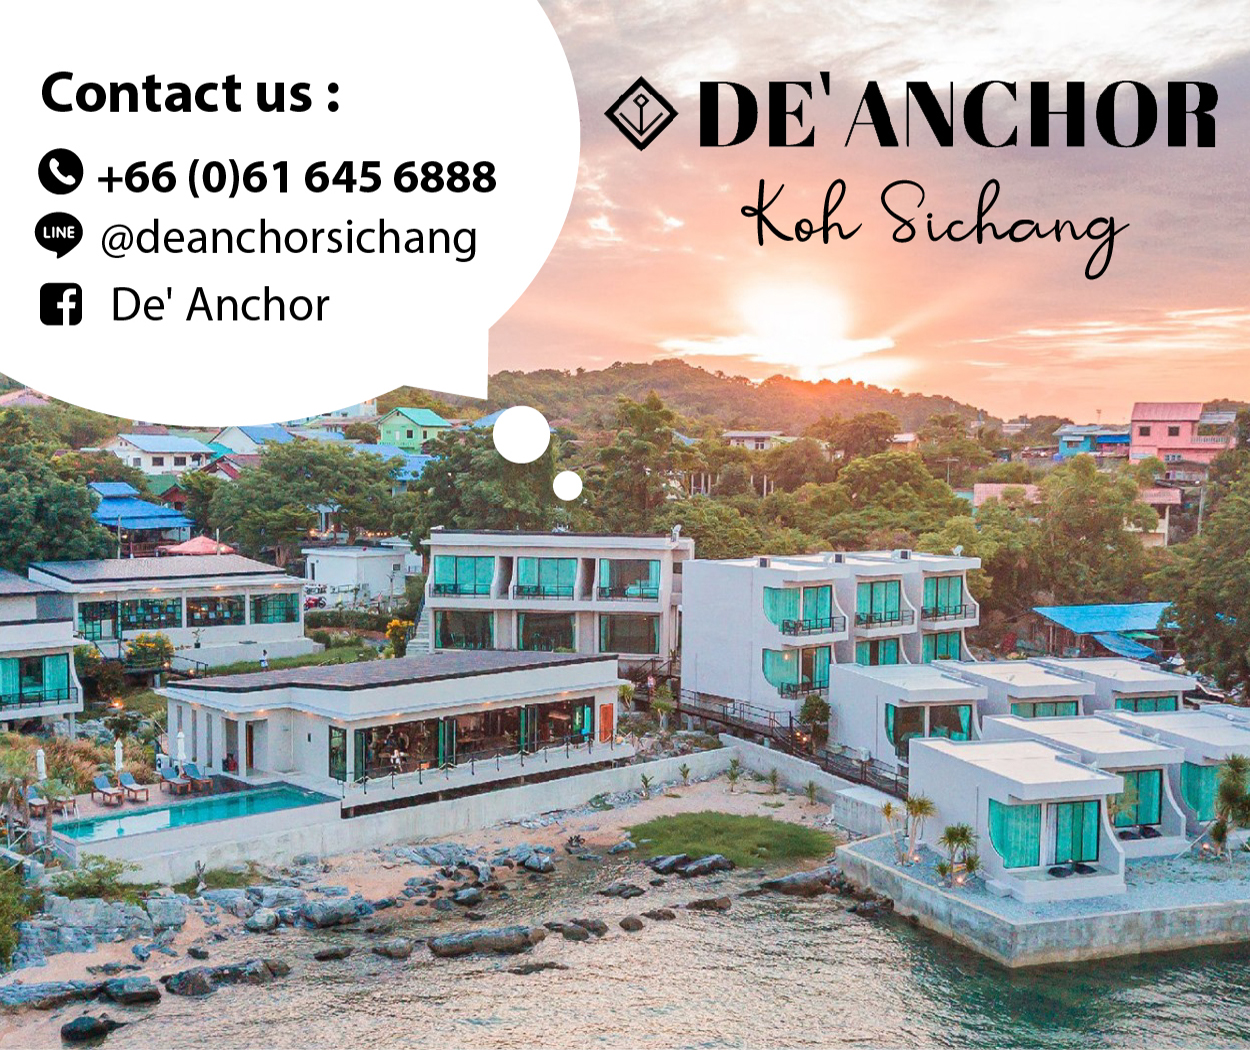 De' Anchor Koh Sichang